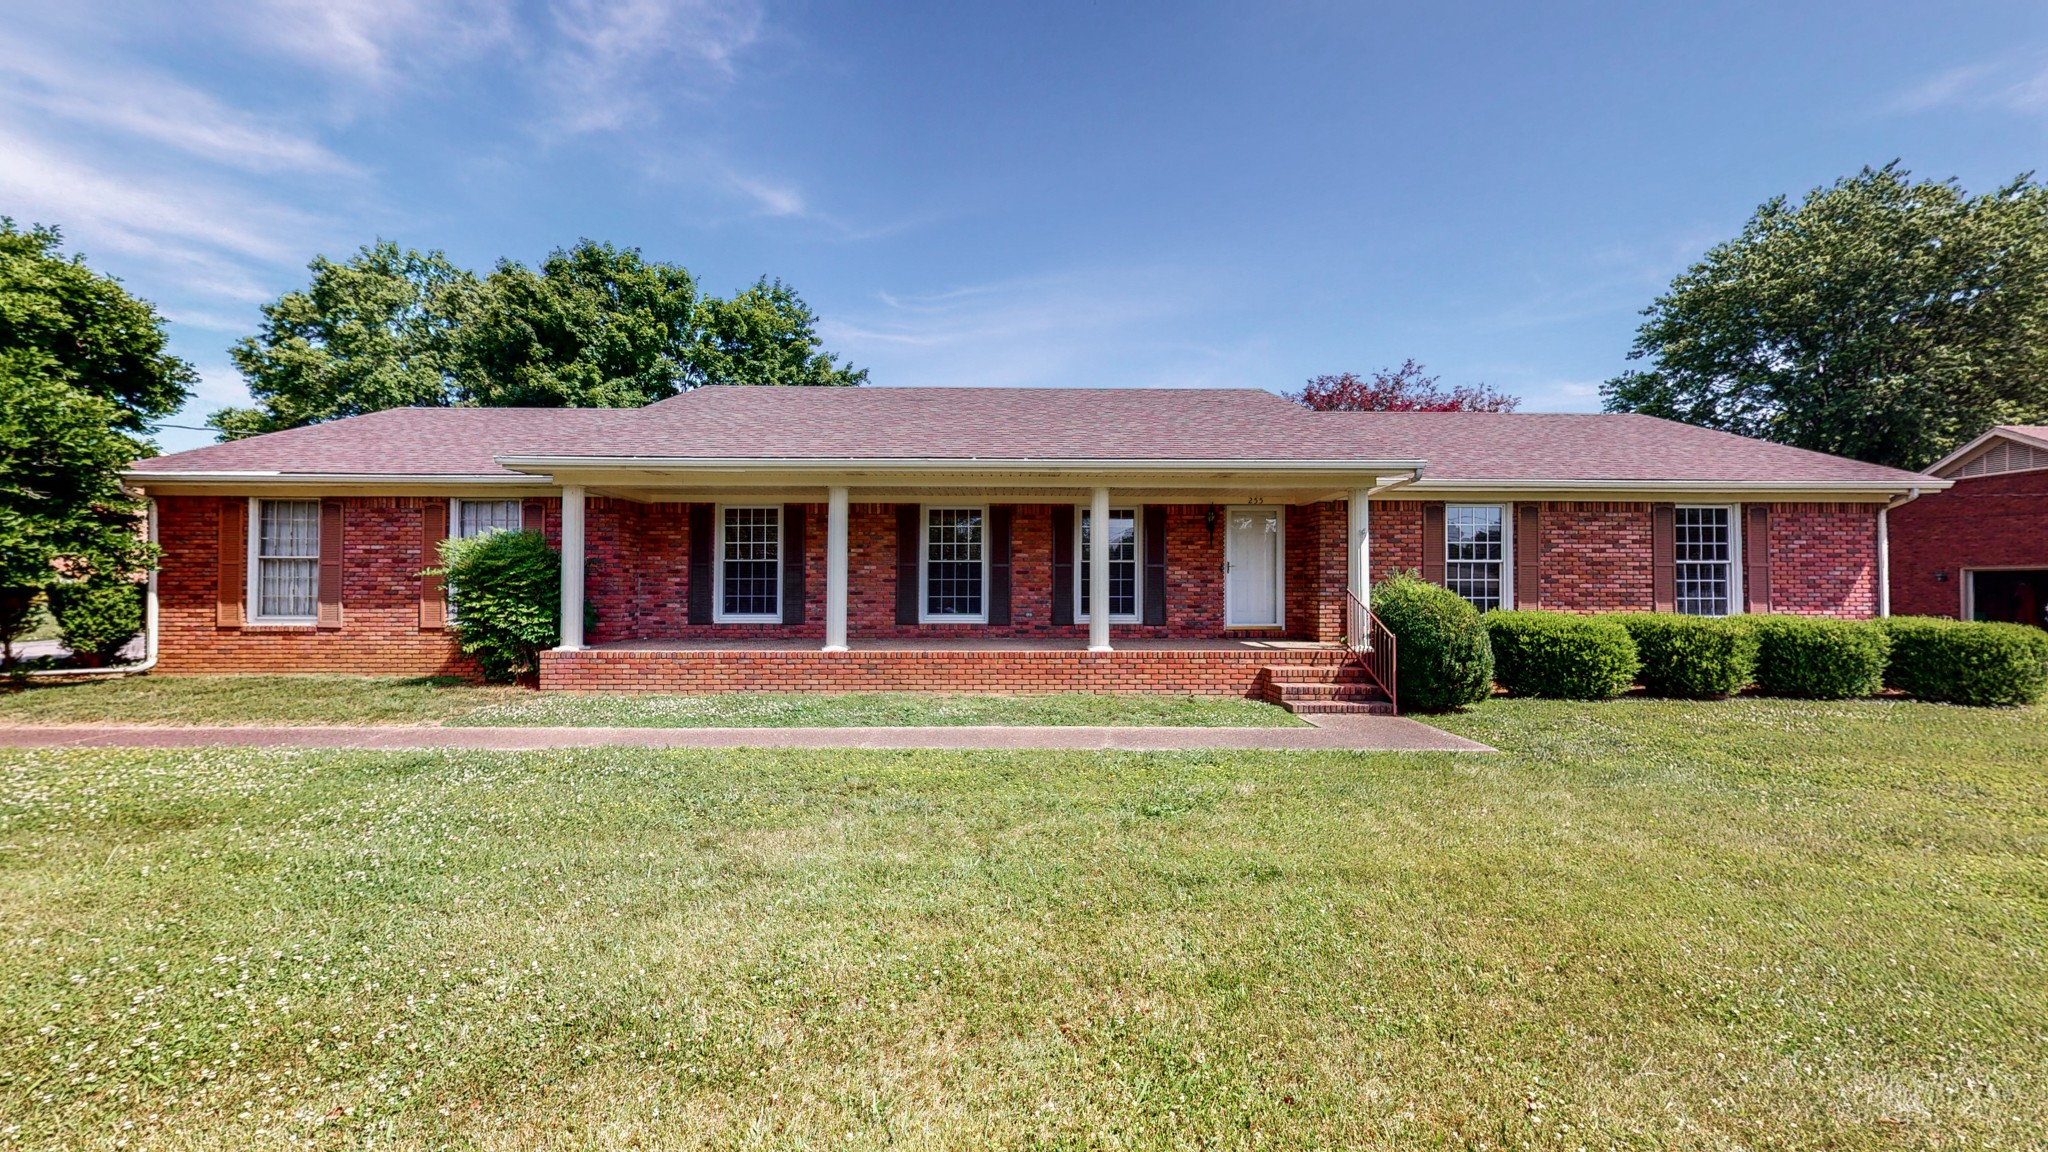 255 Colt Dr Property Photo - Hopkinsville, KY real estate listing